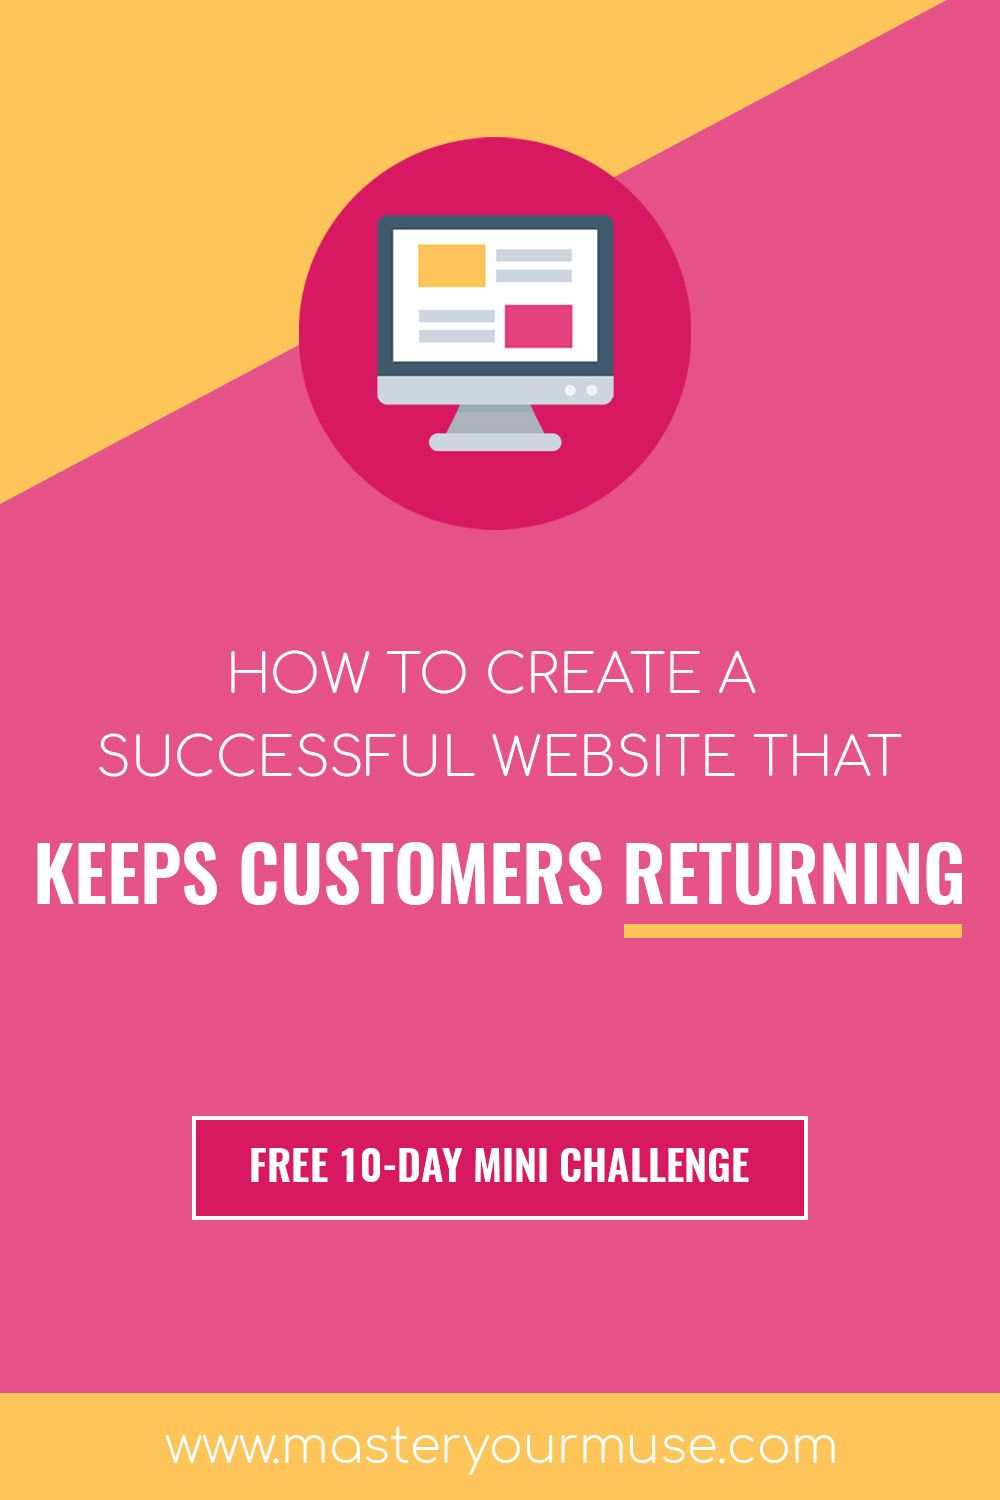 Learn The Most Important Areas You Need To Focus On Help Create A Successful Website That Turns Visitors Into Hy Customers So Can Grow Your